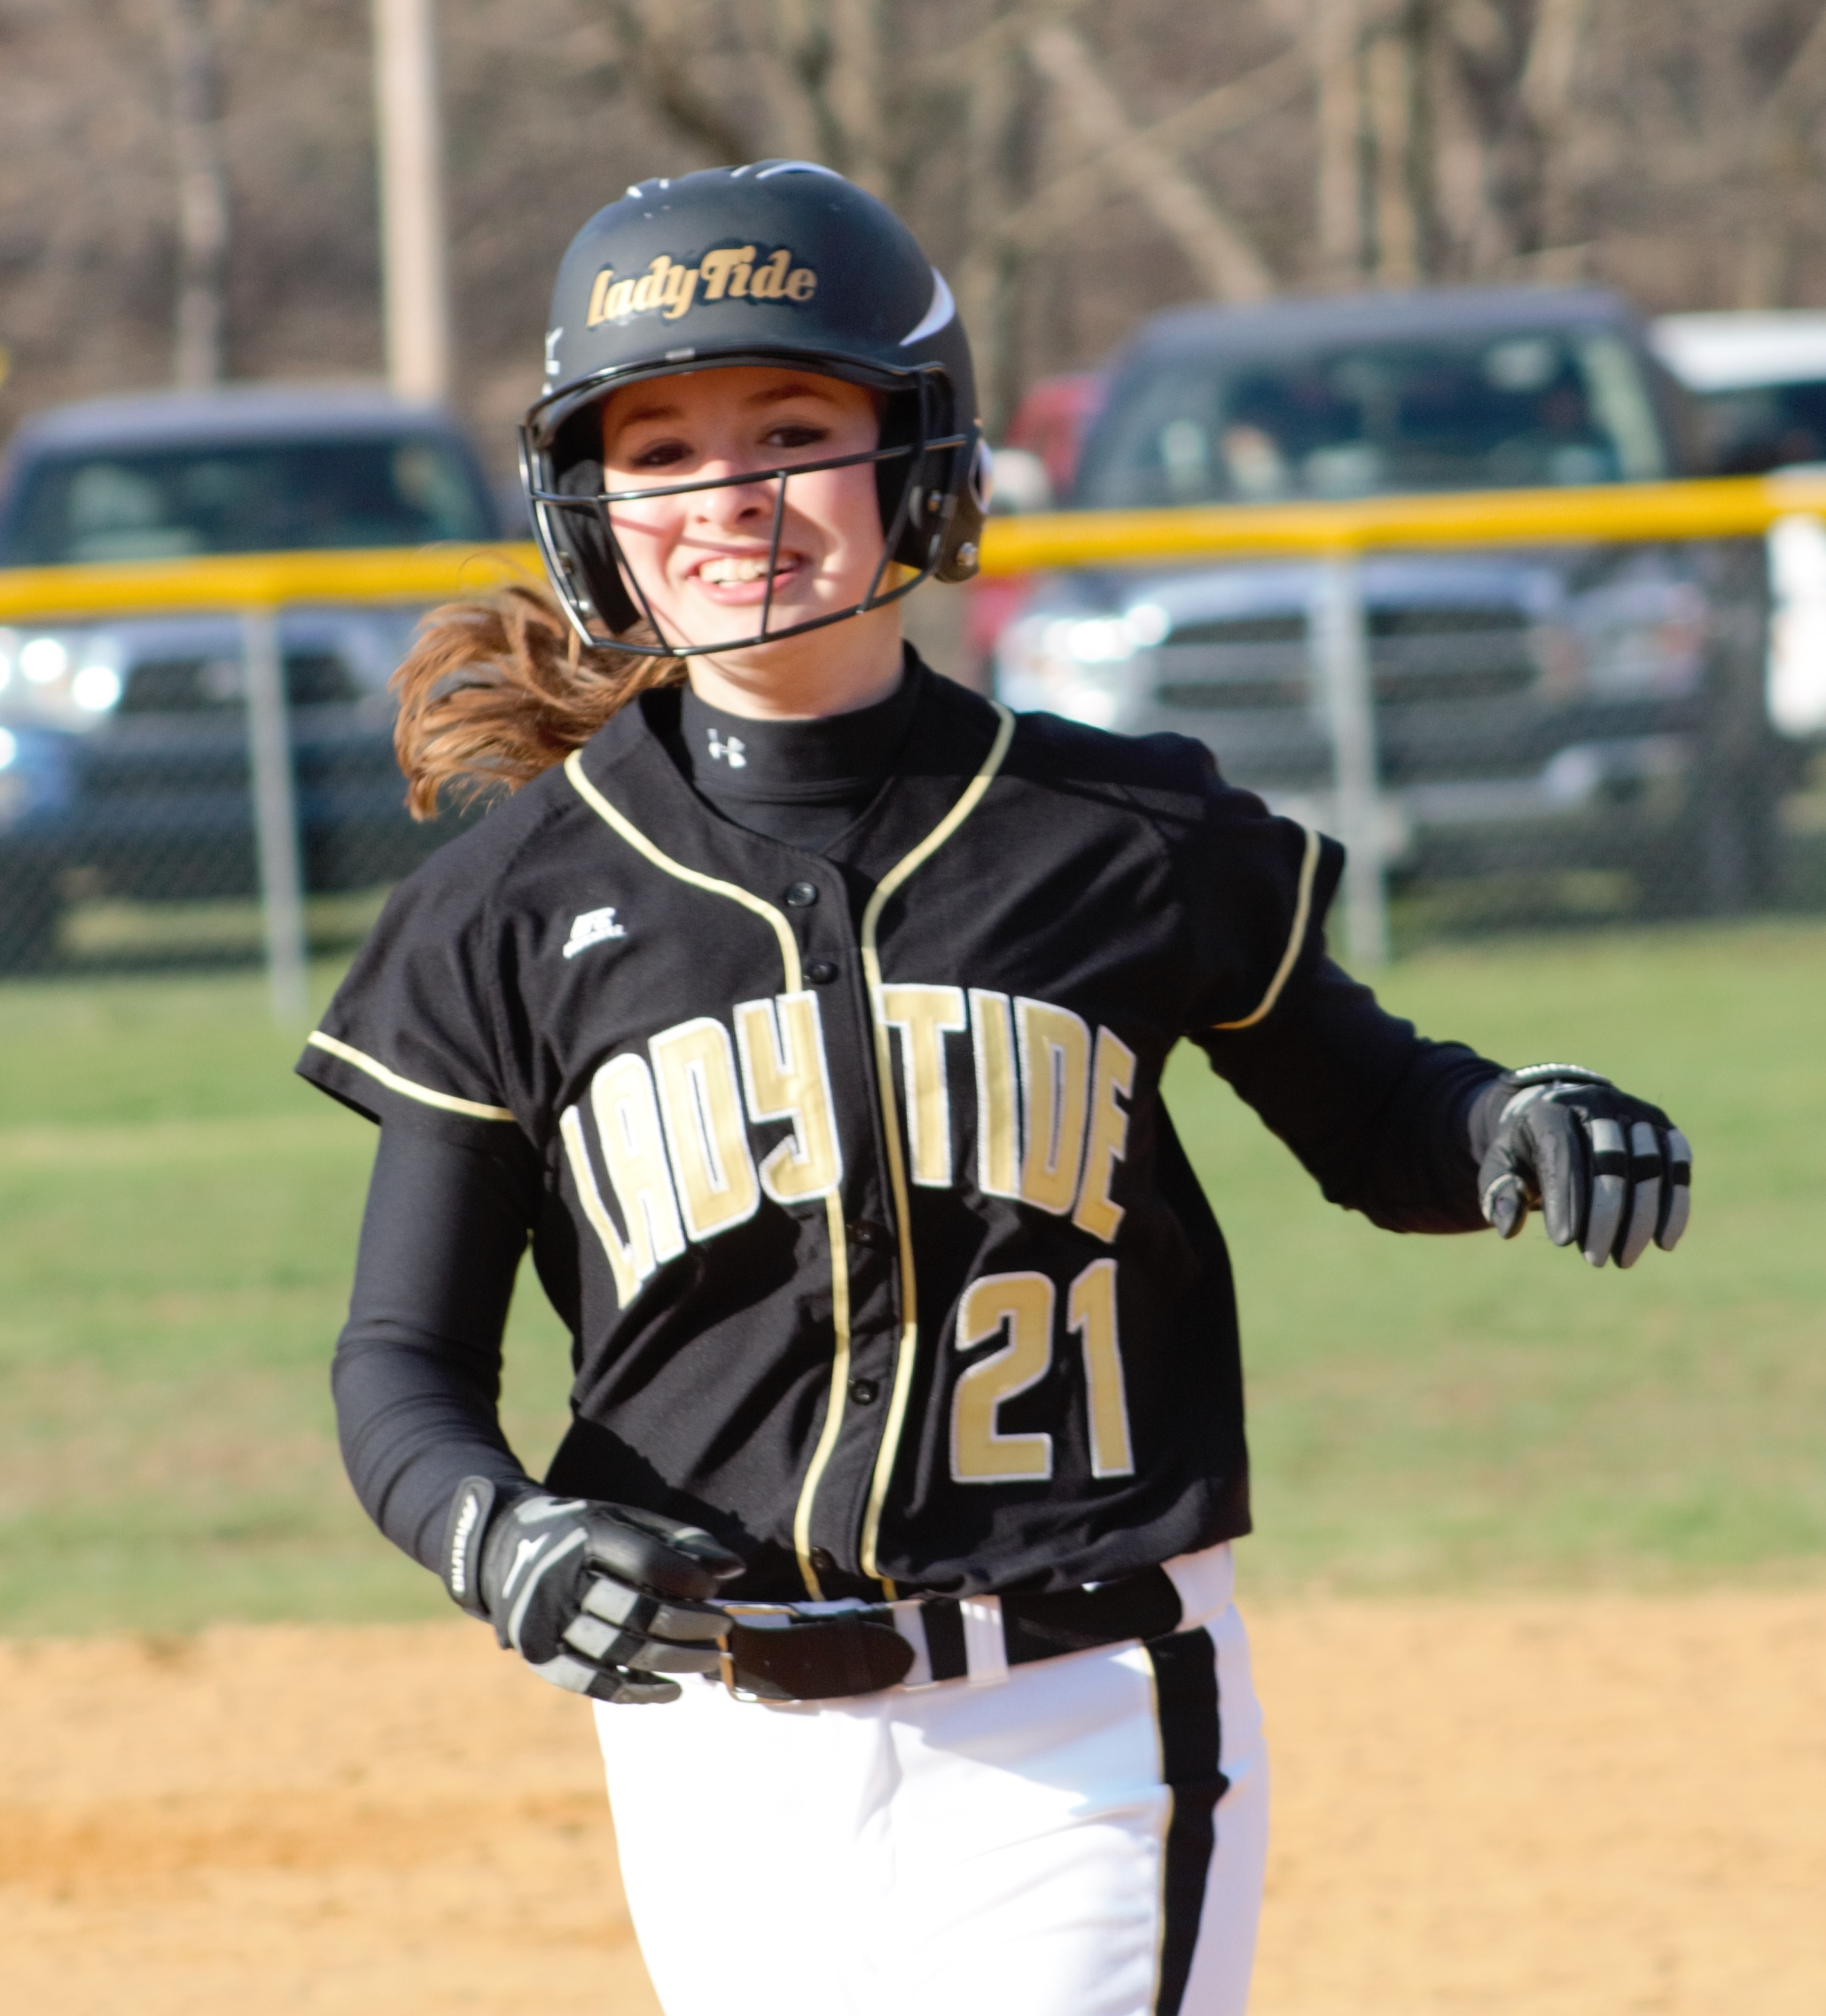 Curwensville sophomore Riley Young is all smiles after her game-winning RBI in the bottom of the seventh inning yesterday.  The Lady Tide defeated Johnsonburg 8-7.  Photo by Rusty McCracken